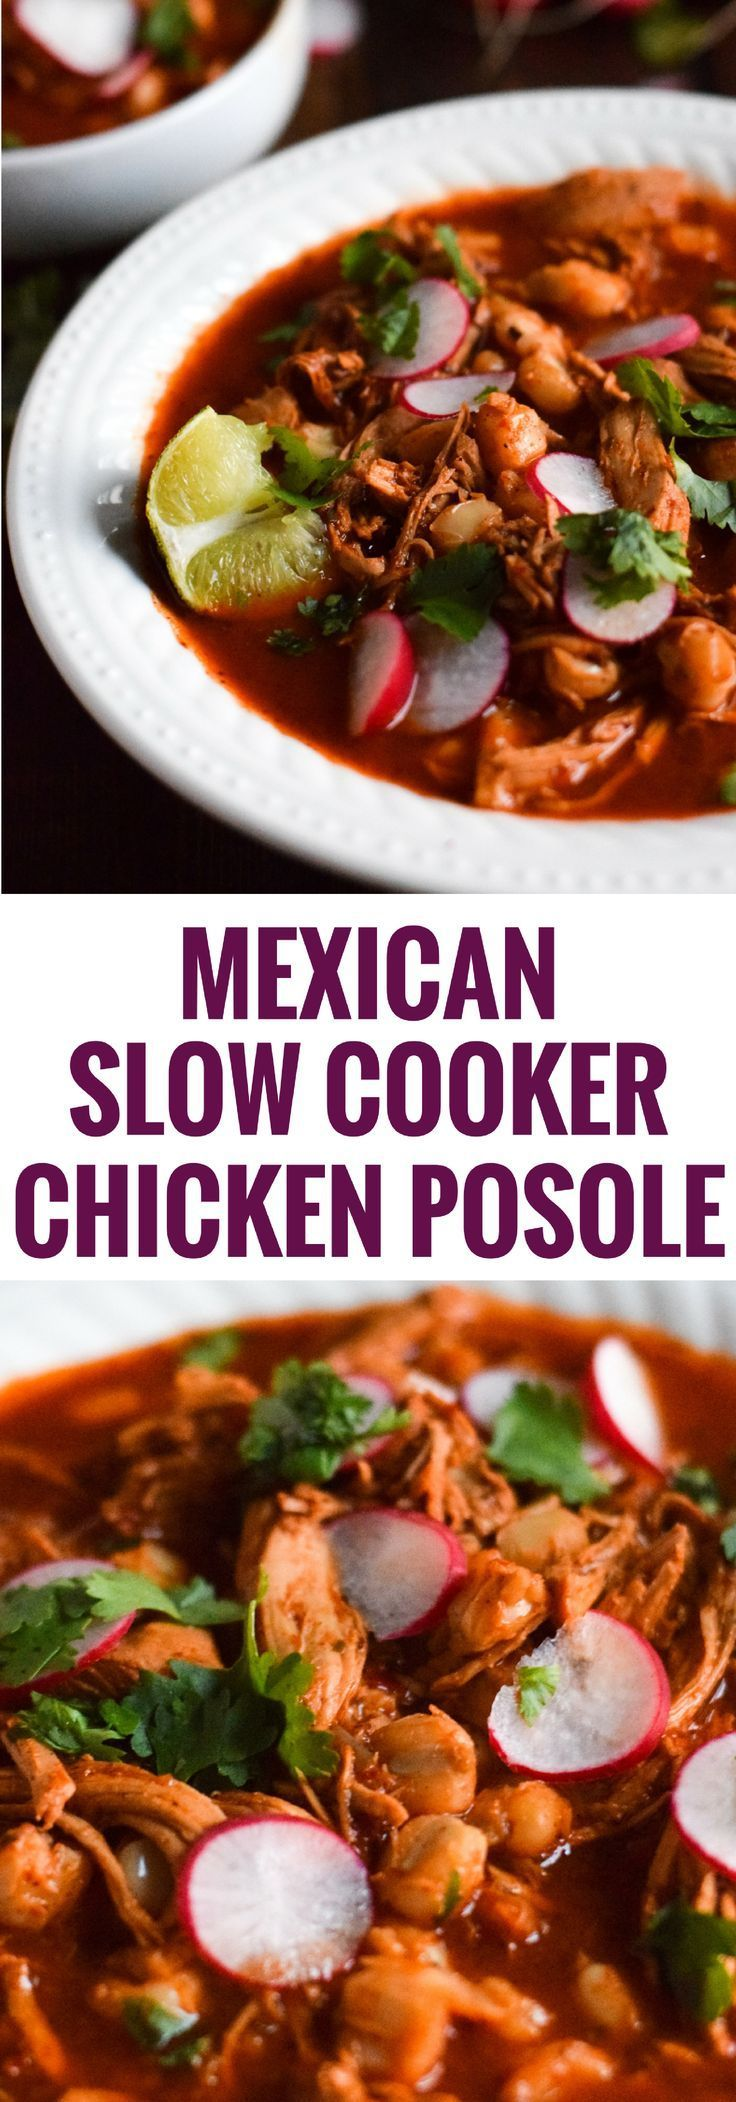 Cooker Chicken Posole Made with shredded chicken and hominy in a comforting red chile broth, this Mexican Slow Cooker Chicken Posole is easy to make and full of authentic Mexican flavors. (gluten free)Made with shredded chicken and hominy in a comforting red chile broth, this Mexican Slow Cooker Chicken Posole is easy to make and full of authentic Mexican flavors...